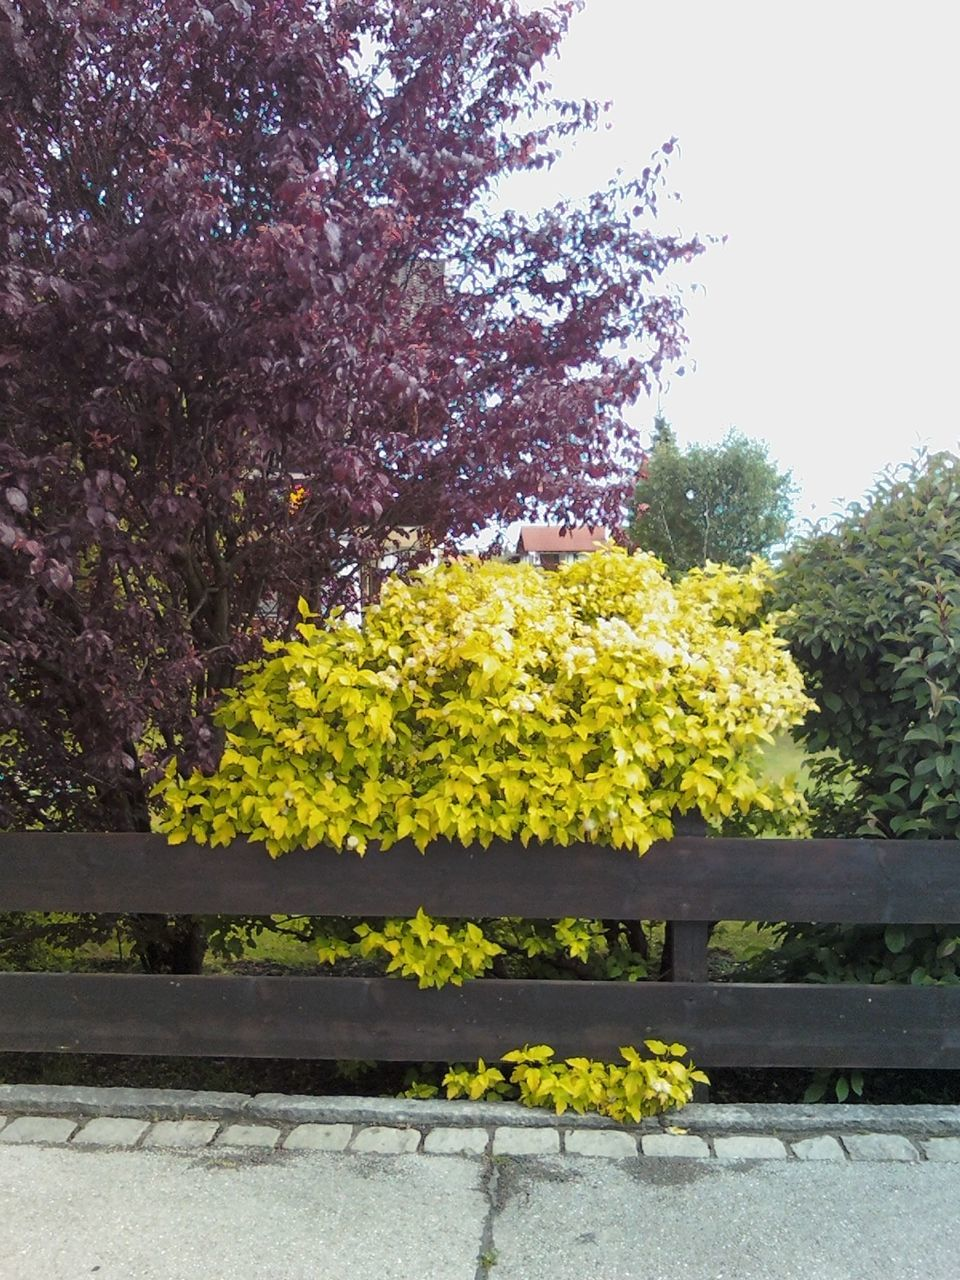 yellow, flower, tree, plant, outdoors, no people, day, growth, springtime, autumn, nature, beauty in nature, sky